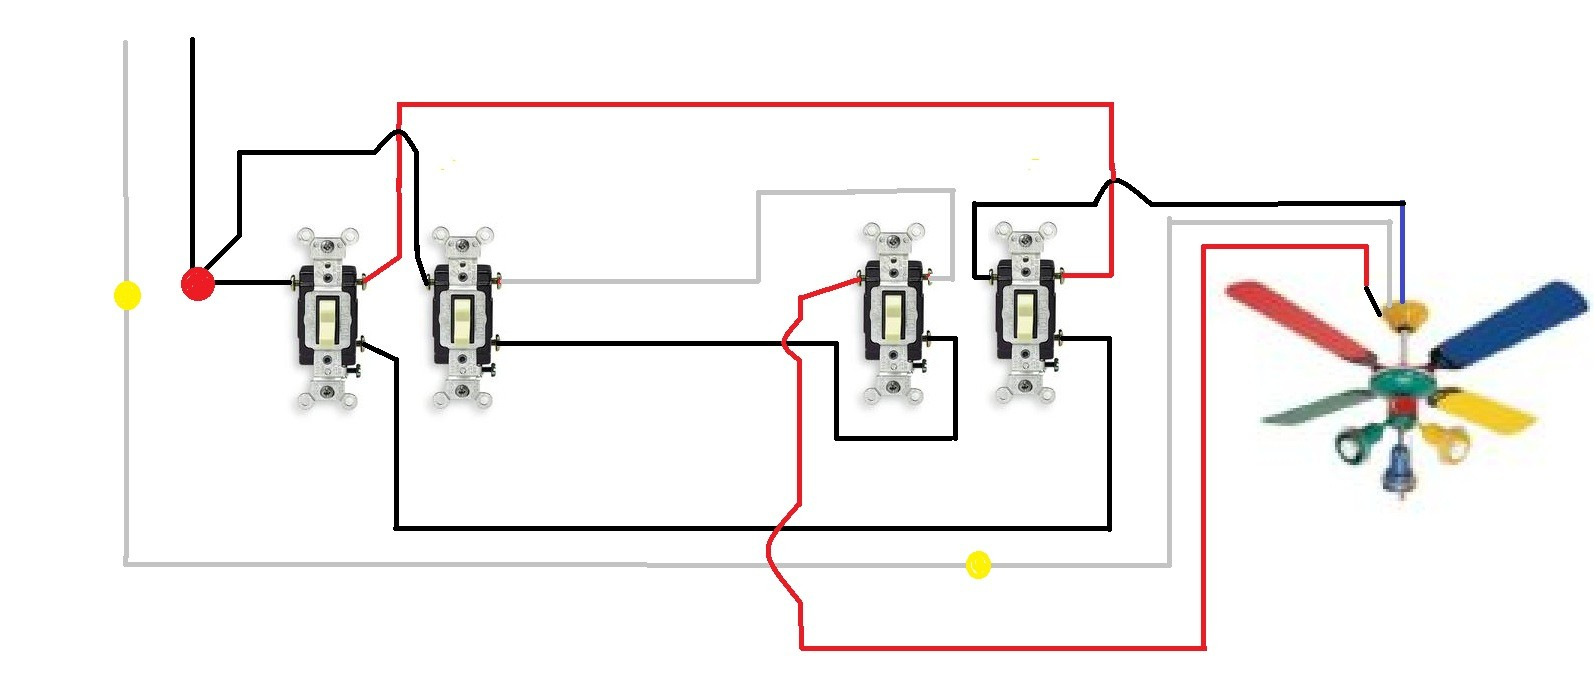 Stupendous Wiring Diagram 3 Way Switch Ceiling Fan And Light How To Wire A With Wiring Cloud Inklaidewilluminateatxorg